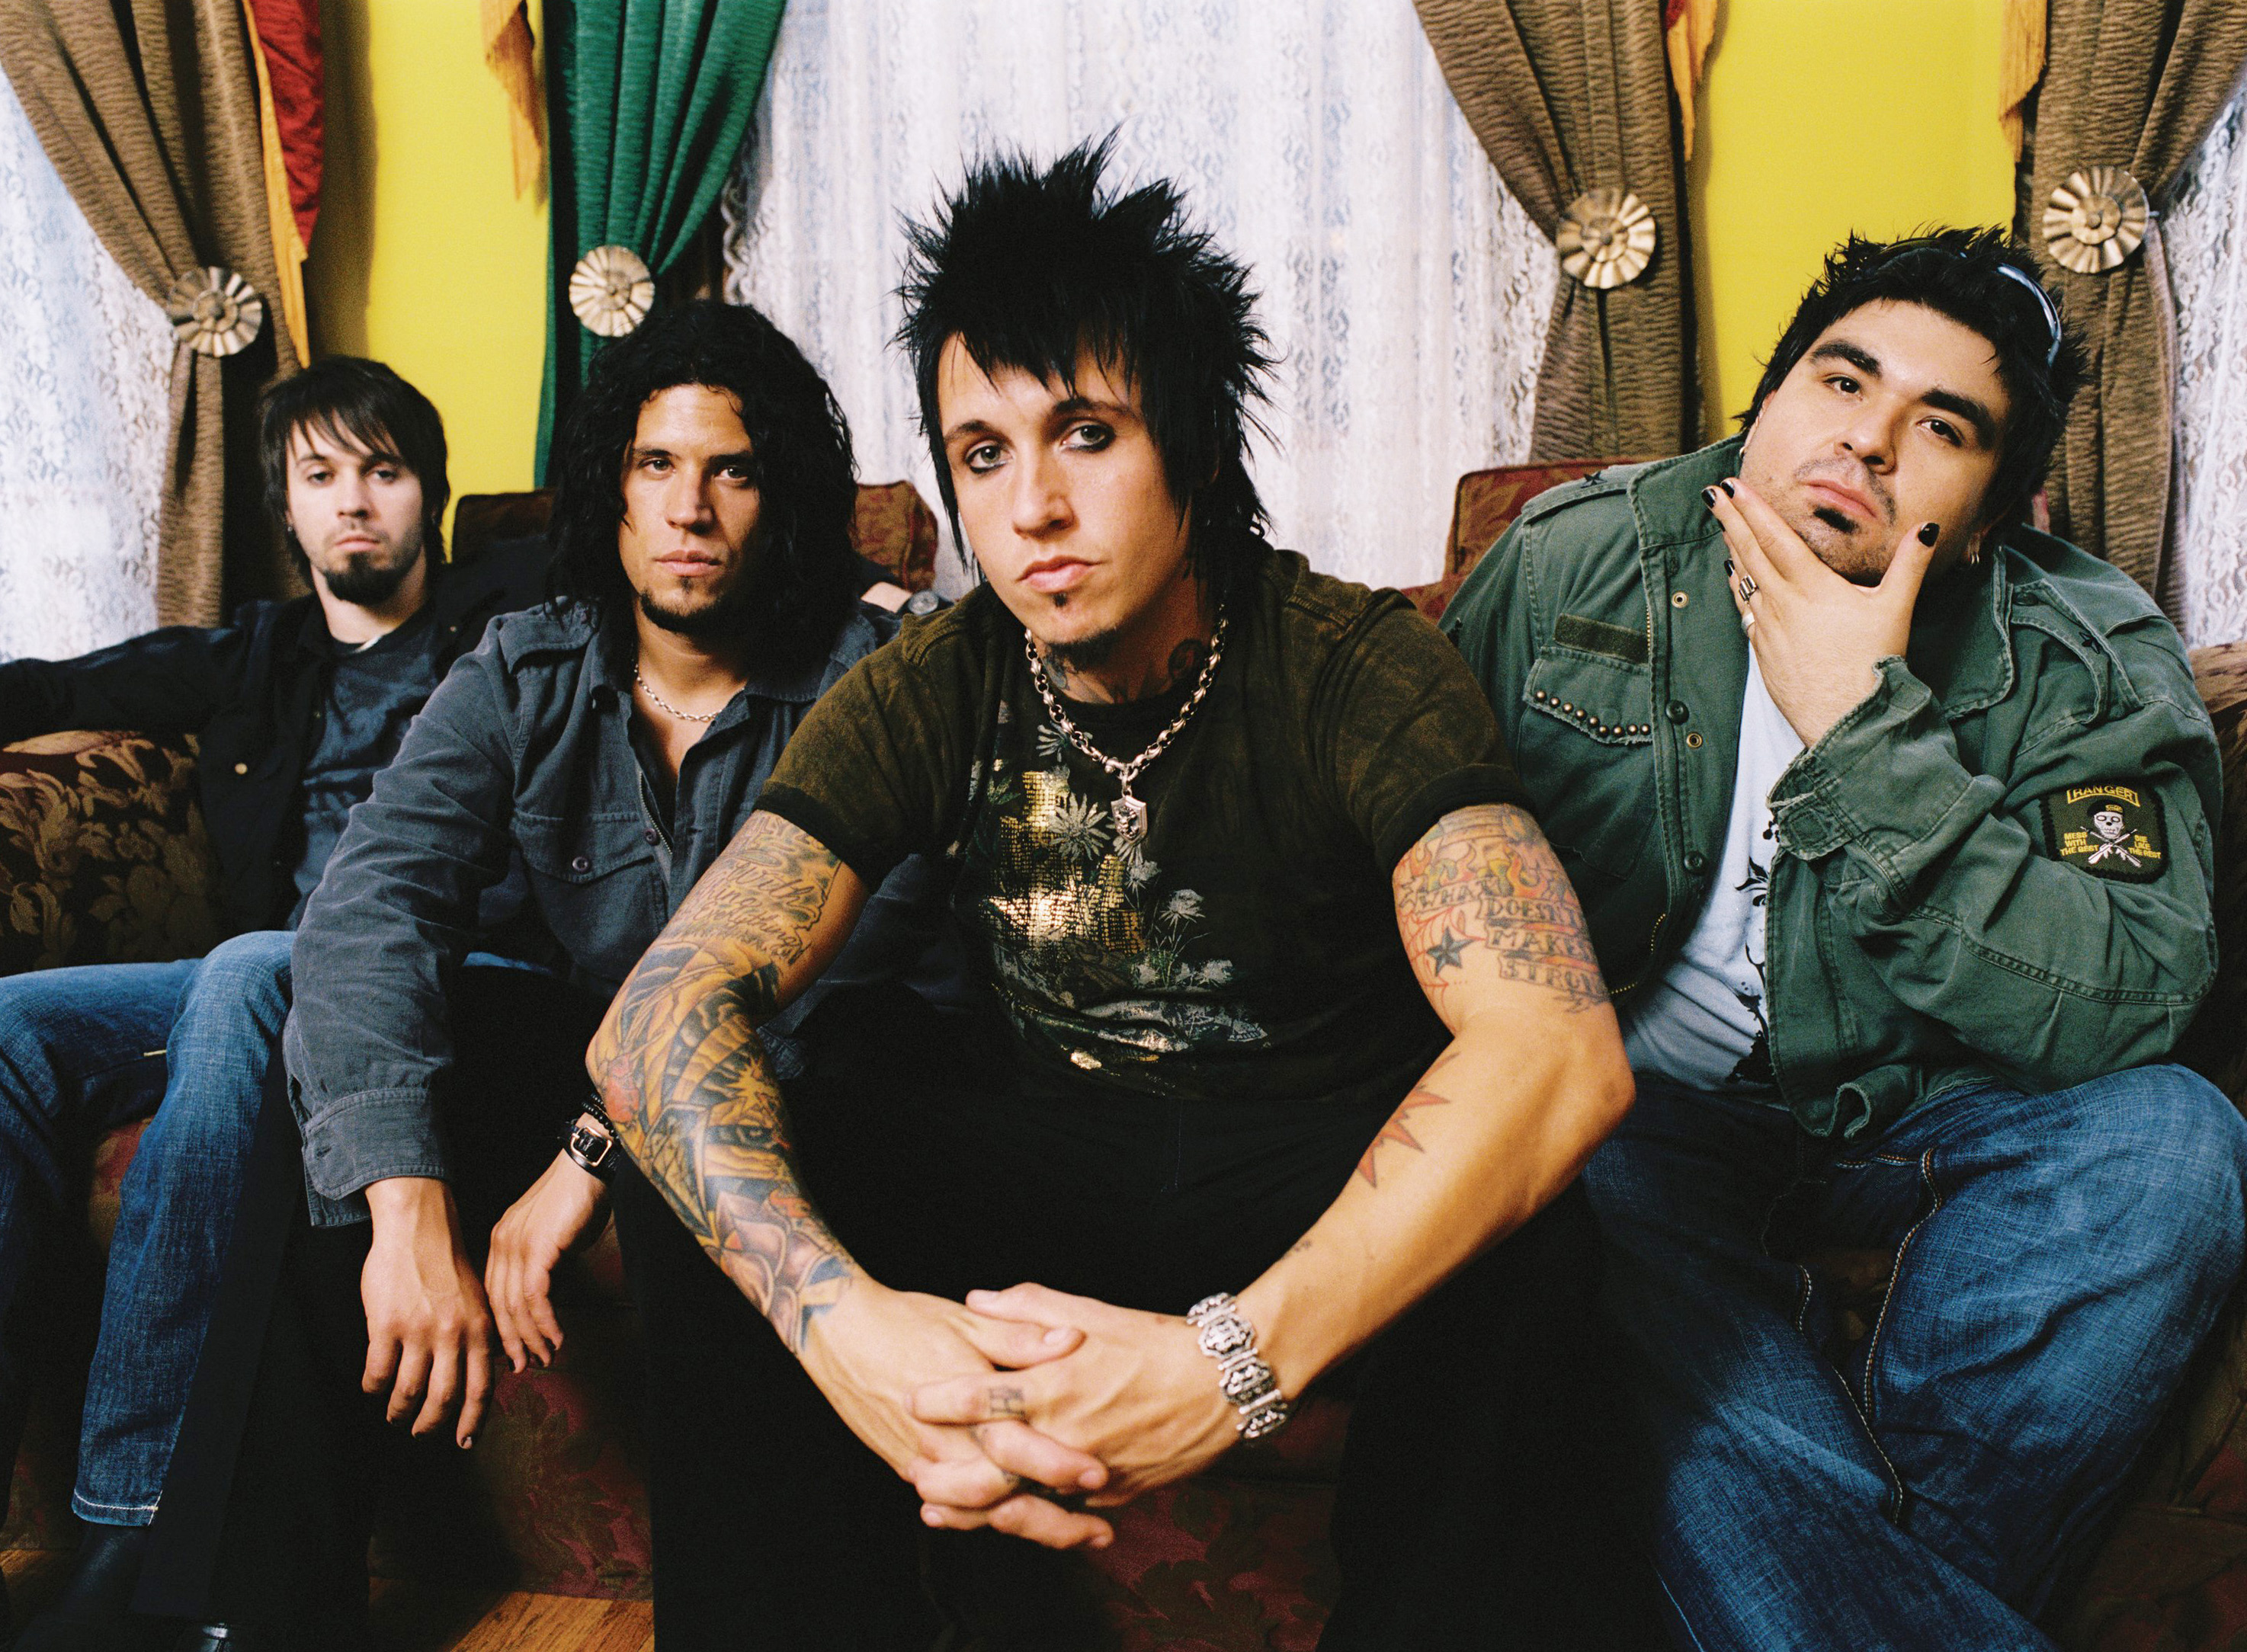 http://hardrockhideout.files.wordpress.com/2008/11/paparoach.jpg